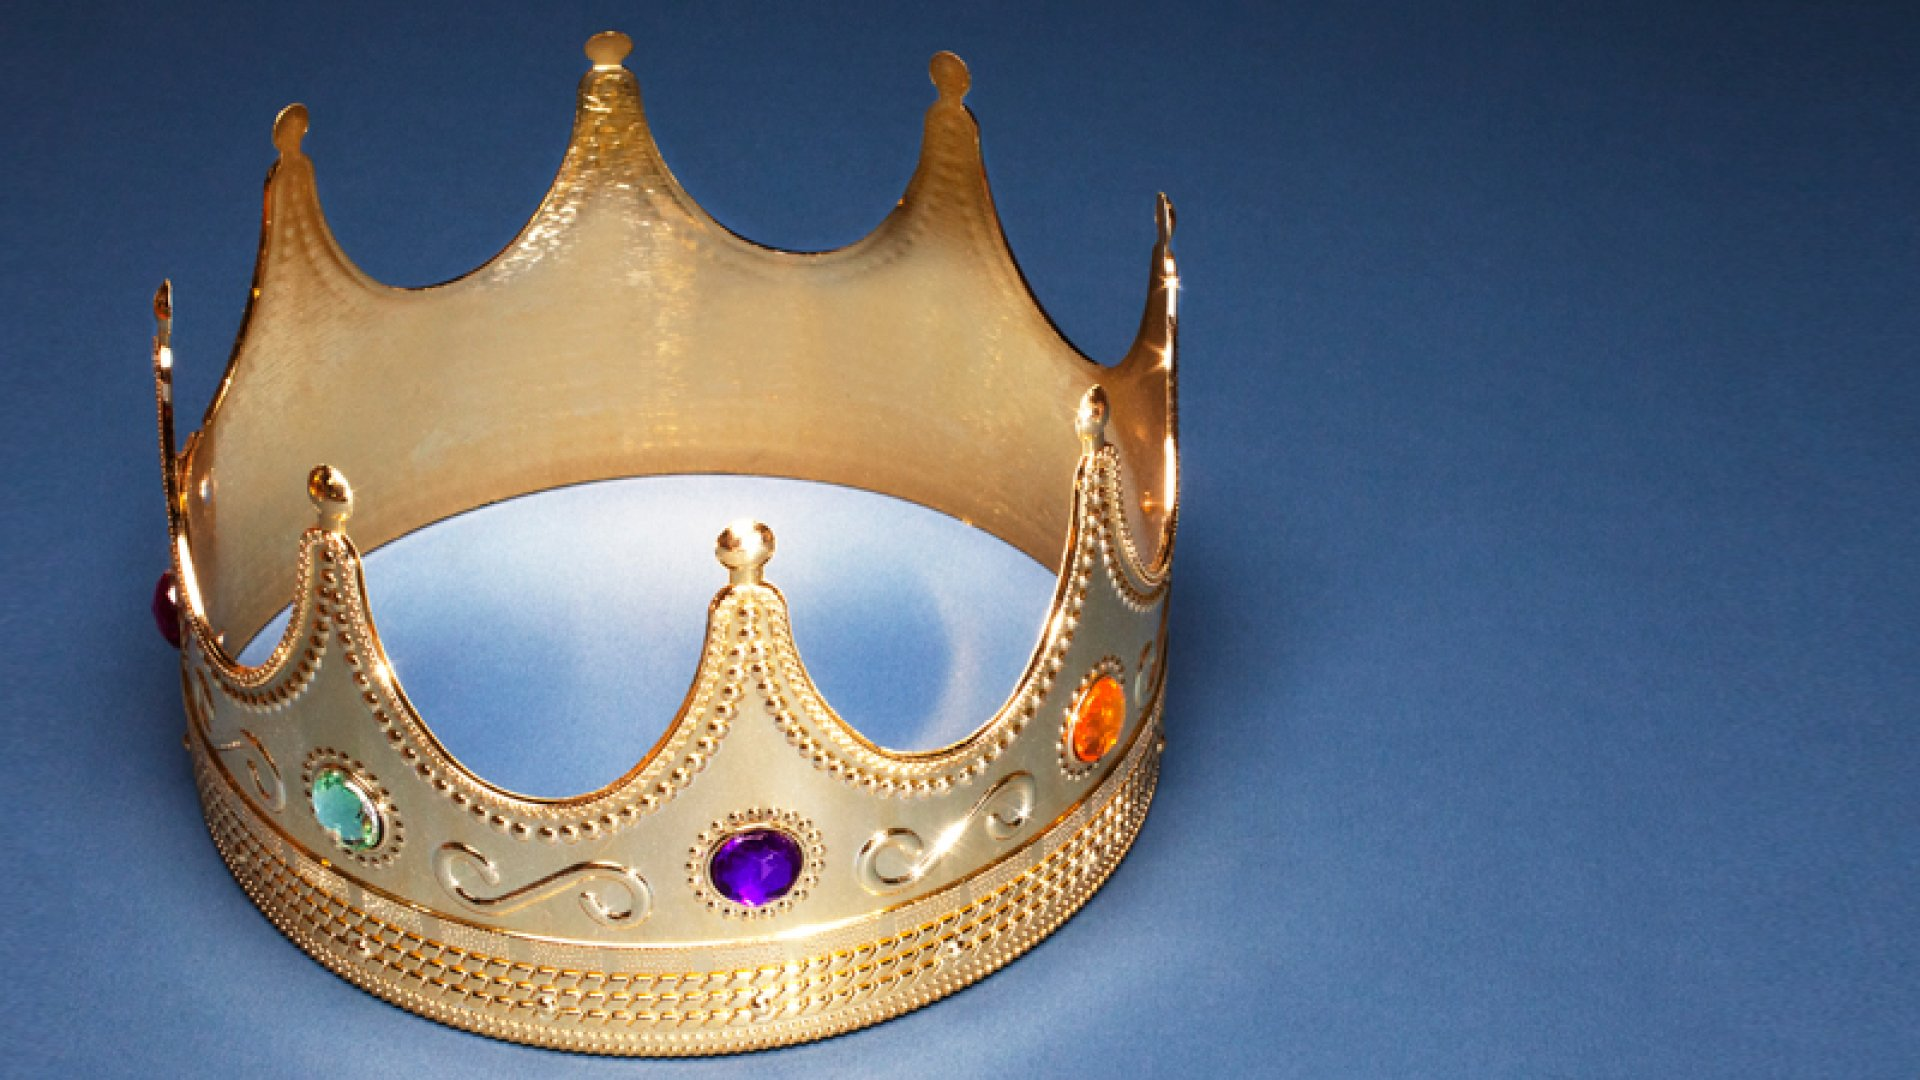 3 Fabulous Ways to Treat Your Customers Like Royalty